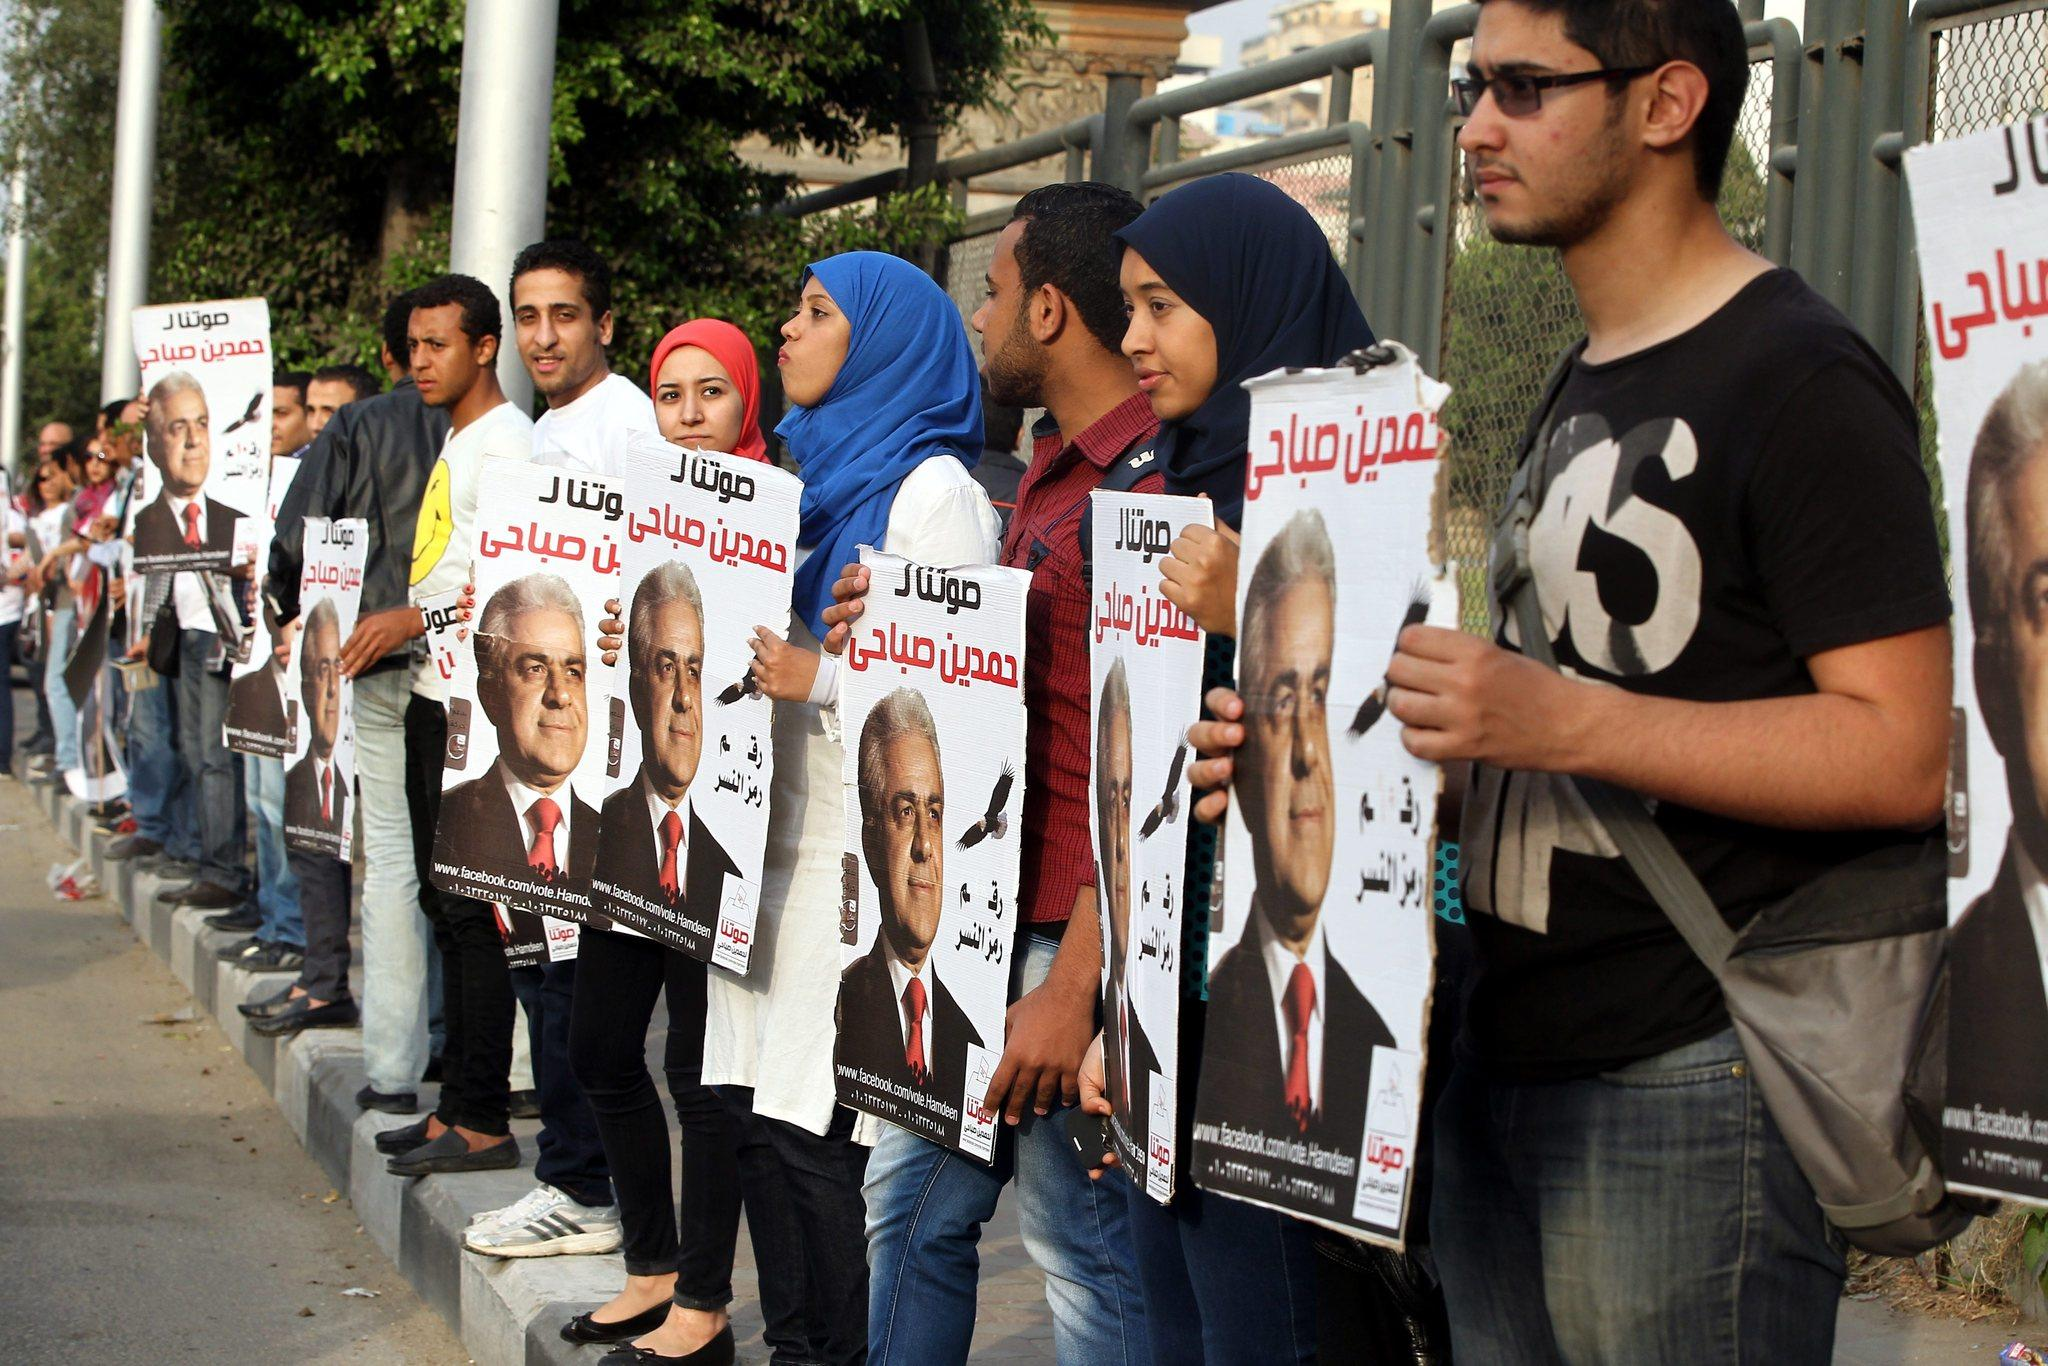 Supporters of Egyptian presidential hopeful Hamdin Sabahi hold up his campaign posters during a demonstration in Cairo.